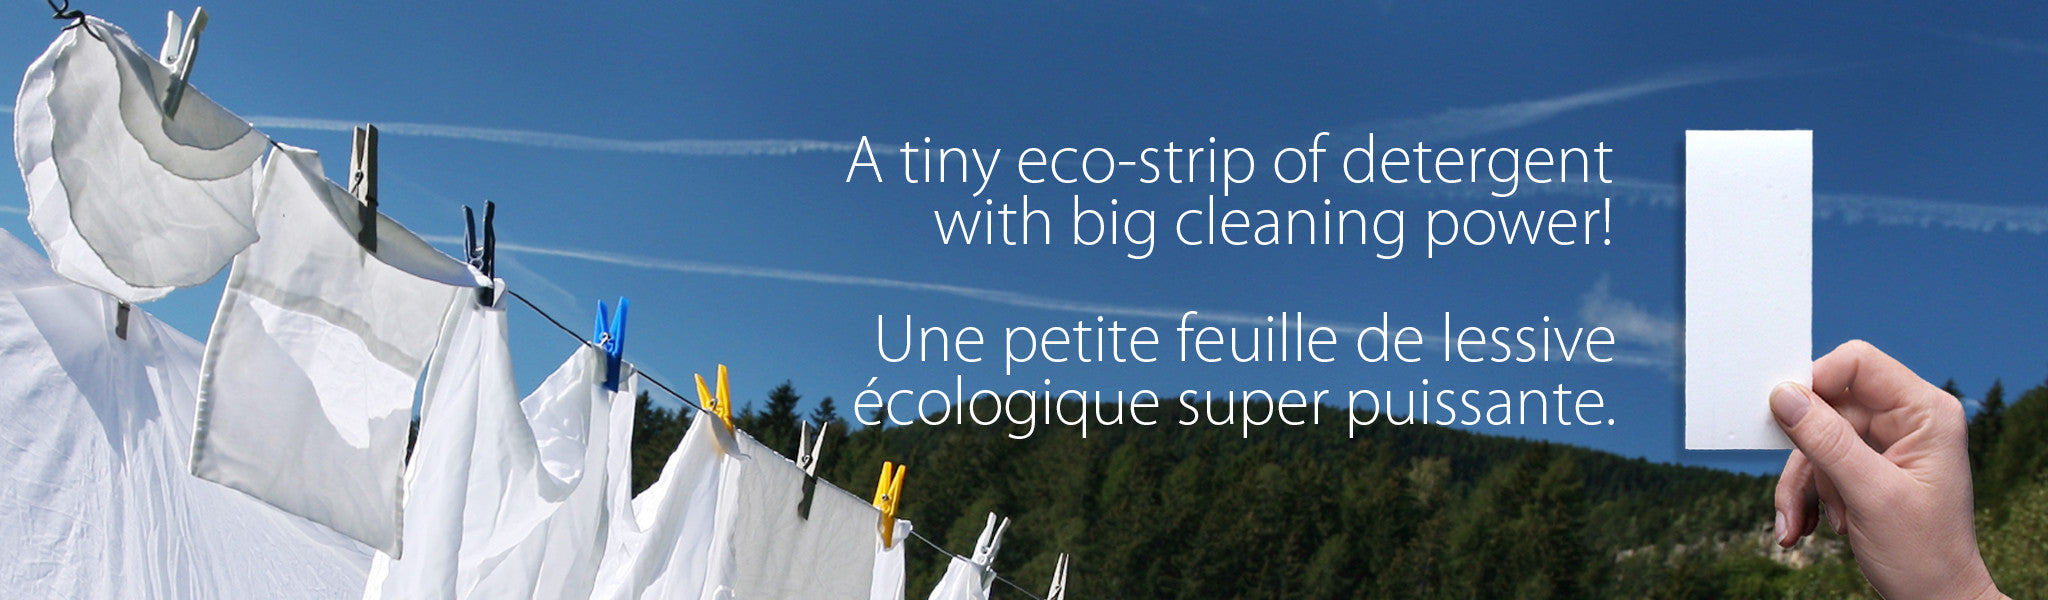 A tiny eco-strip of detergent with big cleaning power! | Une petite feuille de lessive écologique super puissante.